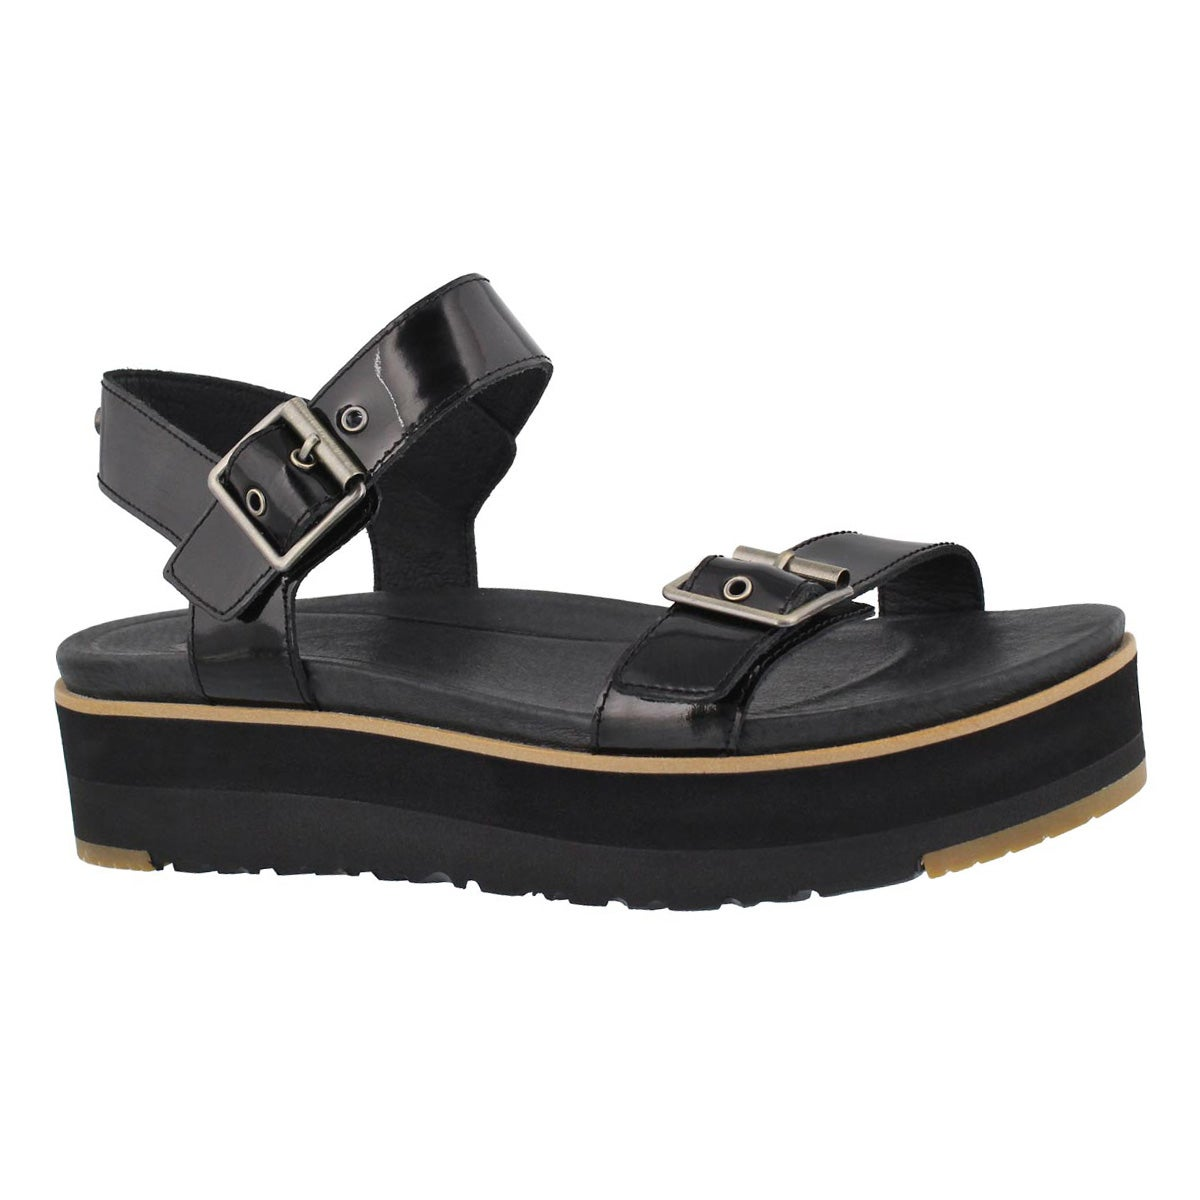 Women's ANGIE black casual platform sandals